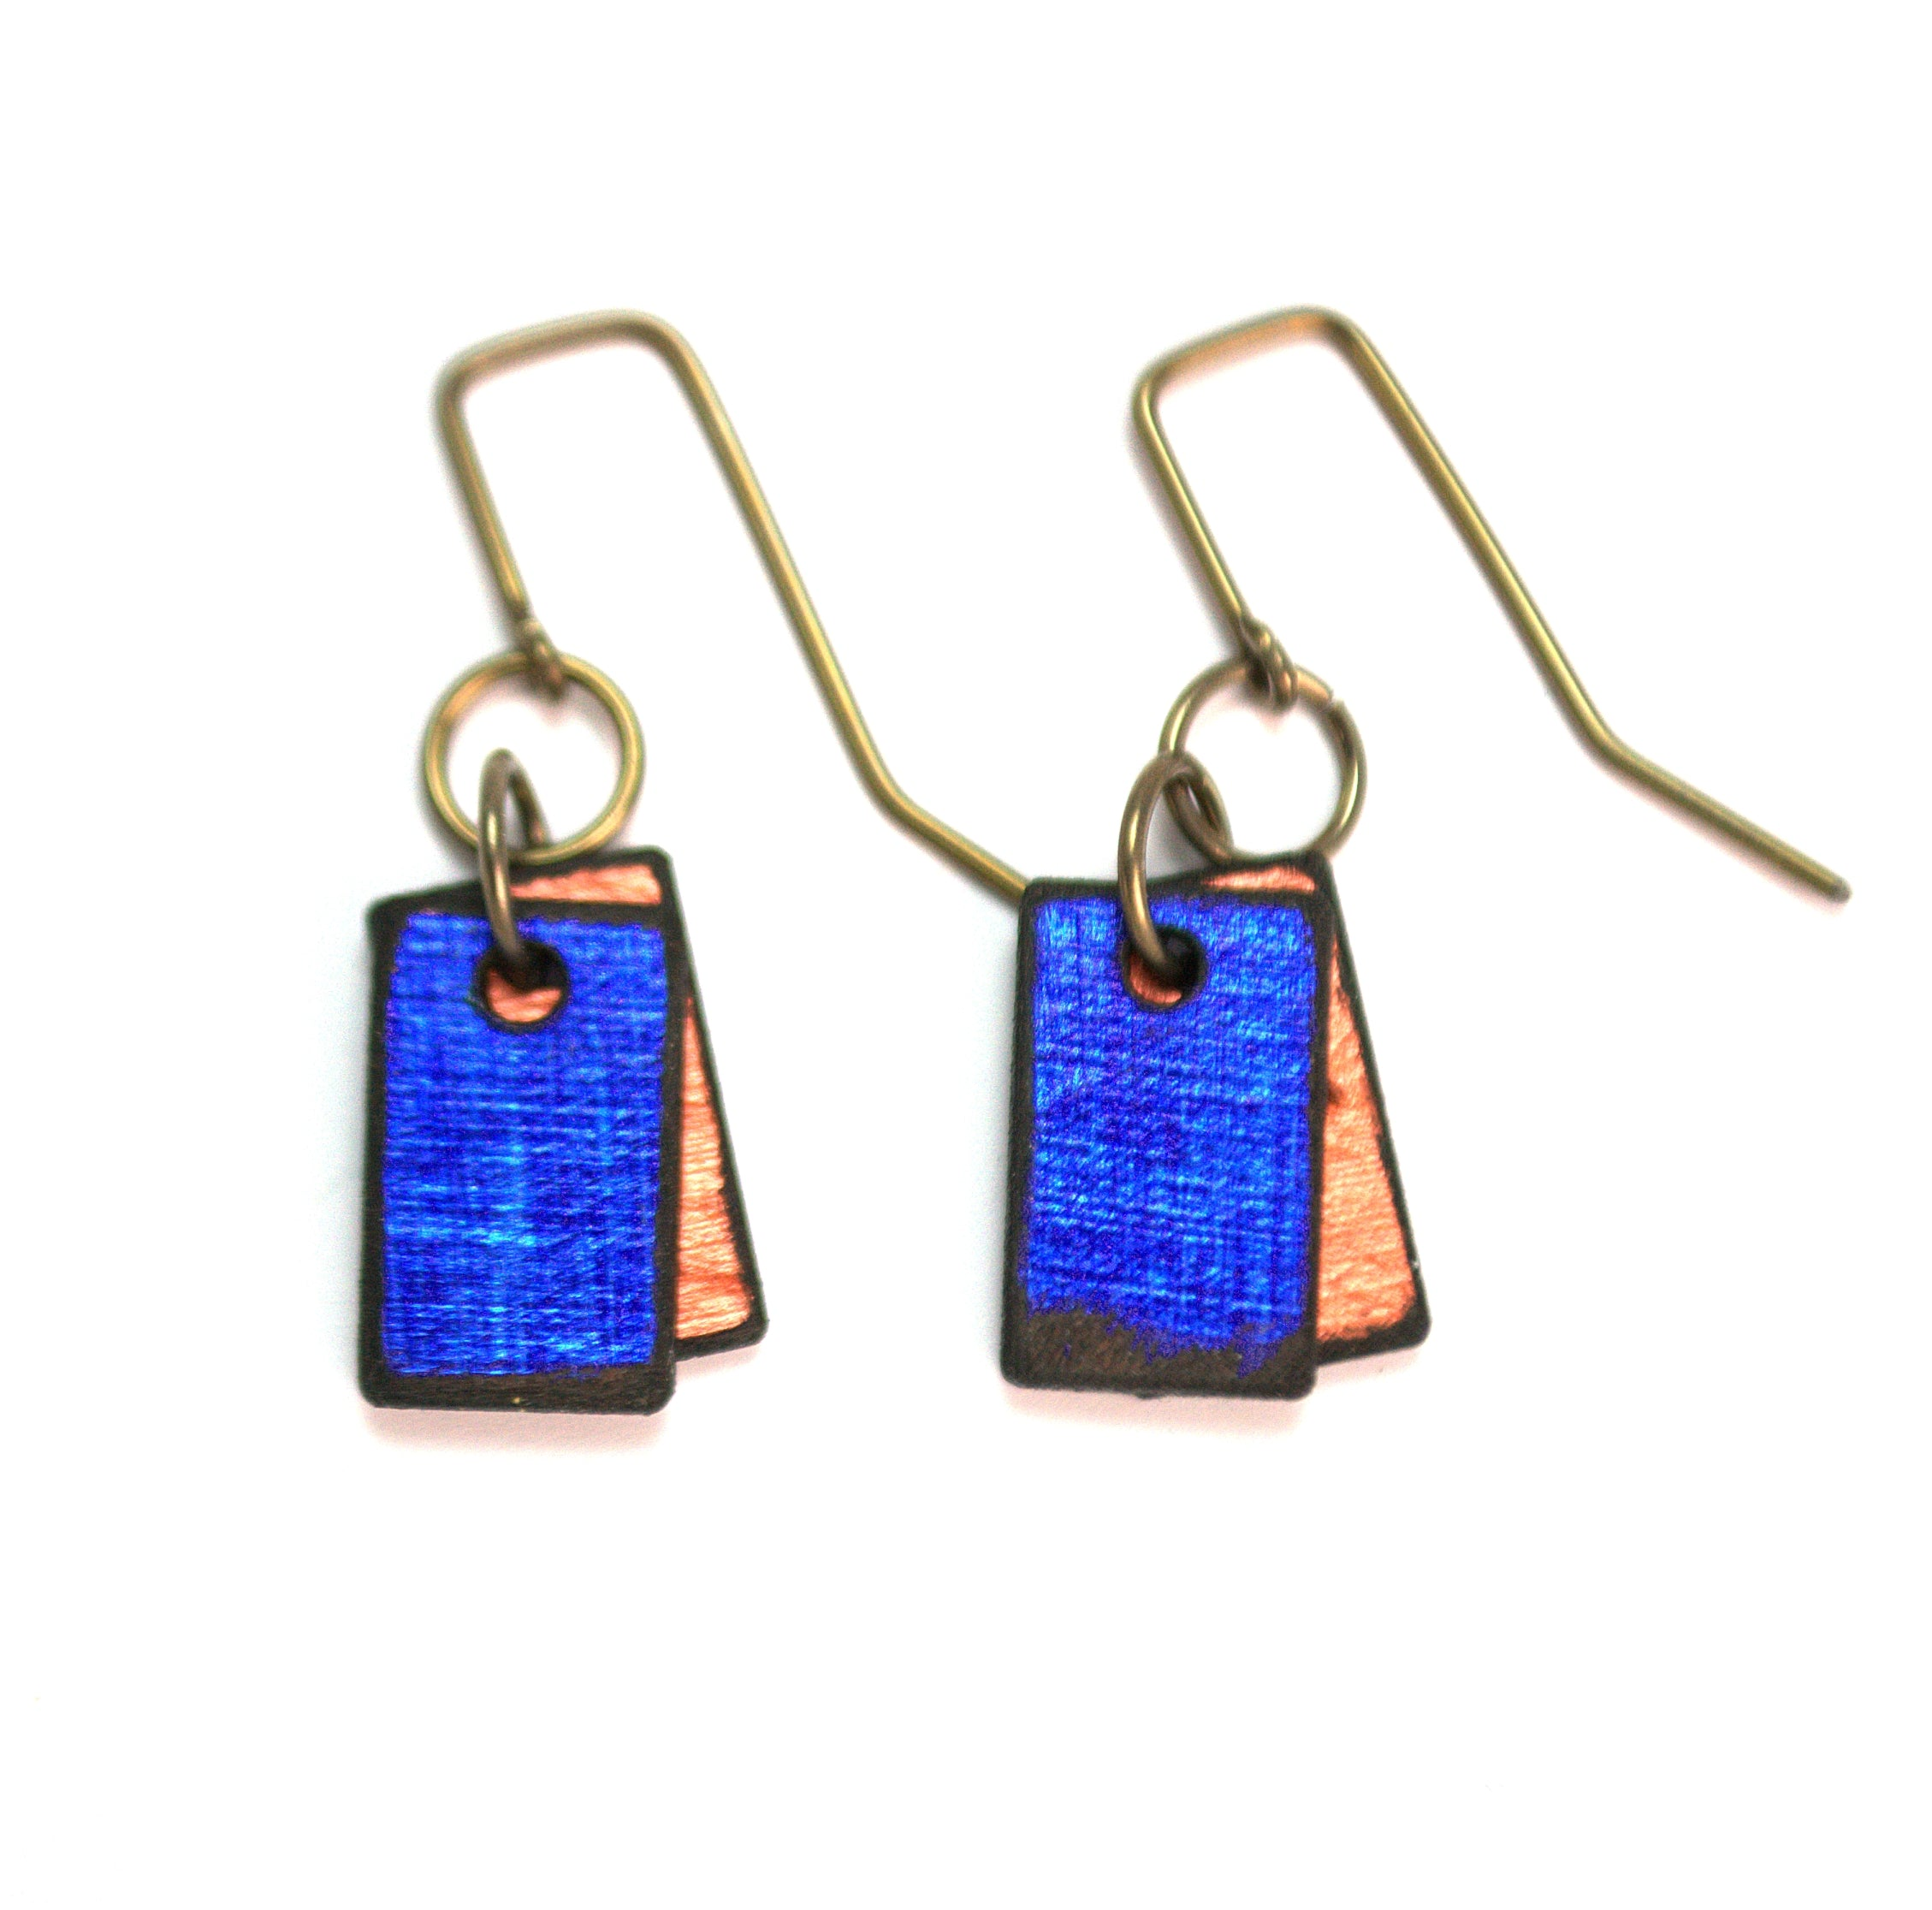 Mini sapphire rectangle earrings, made from rawhide in Cheyenne Wyoming, hypoallergenic